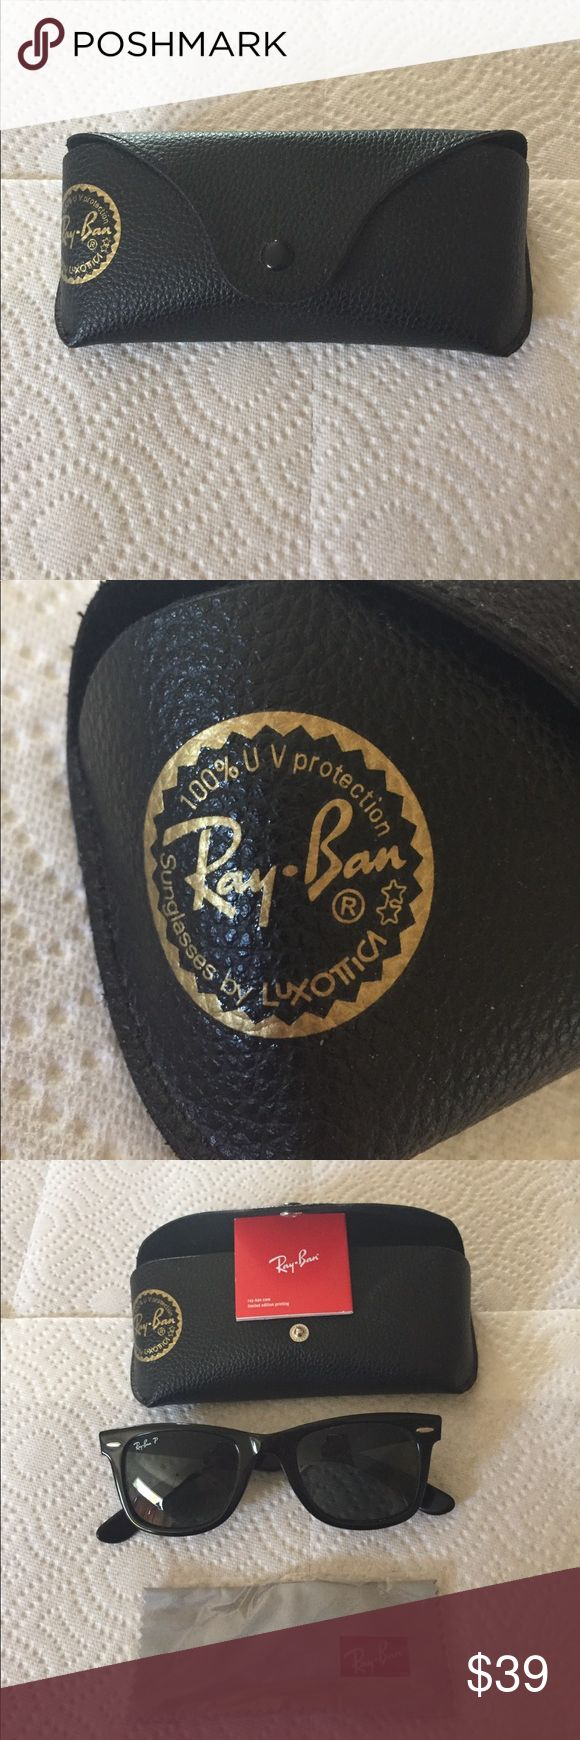 Ray-Ban sunglasses Ray-Ban Wayfarer Handmade in Italy.  Never worn! New condition Ray-Ban Accessories Sunglasses